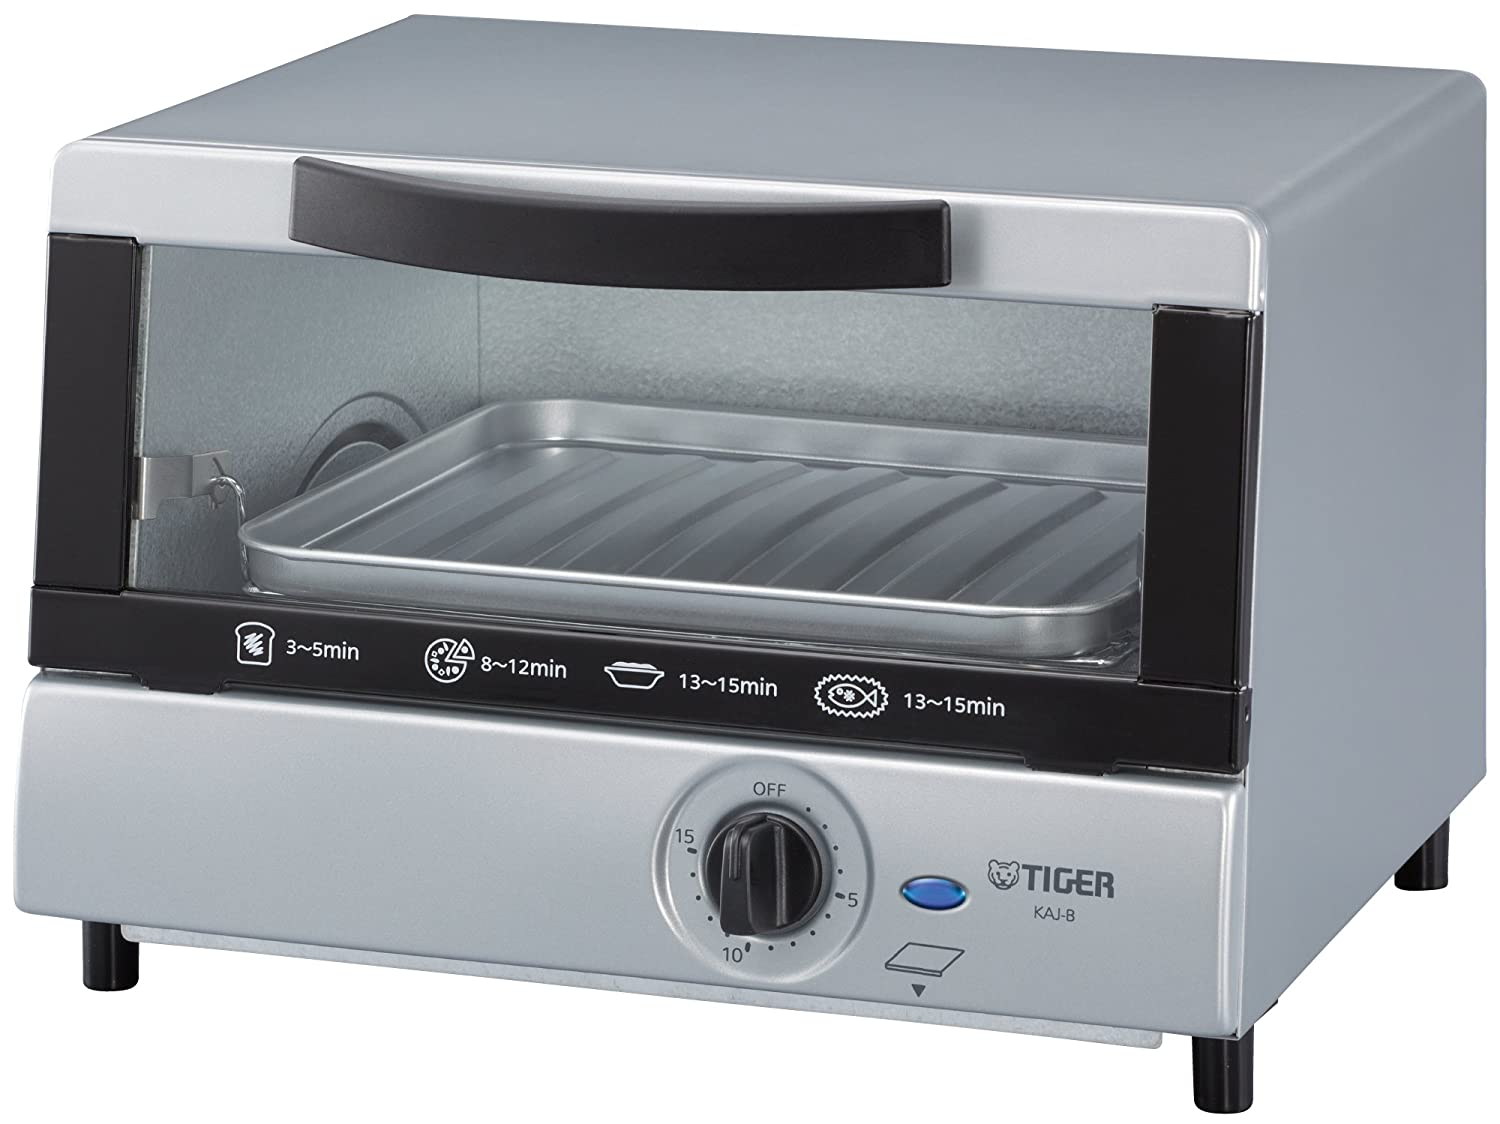 Tiger Corporation KAJ-B10U Double Infrared Toaster Oven with Removable Crumb Tray